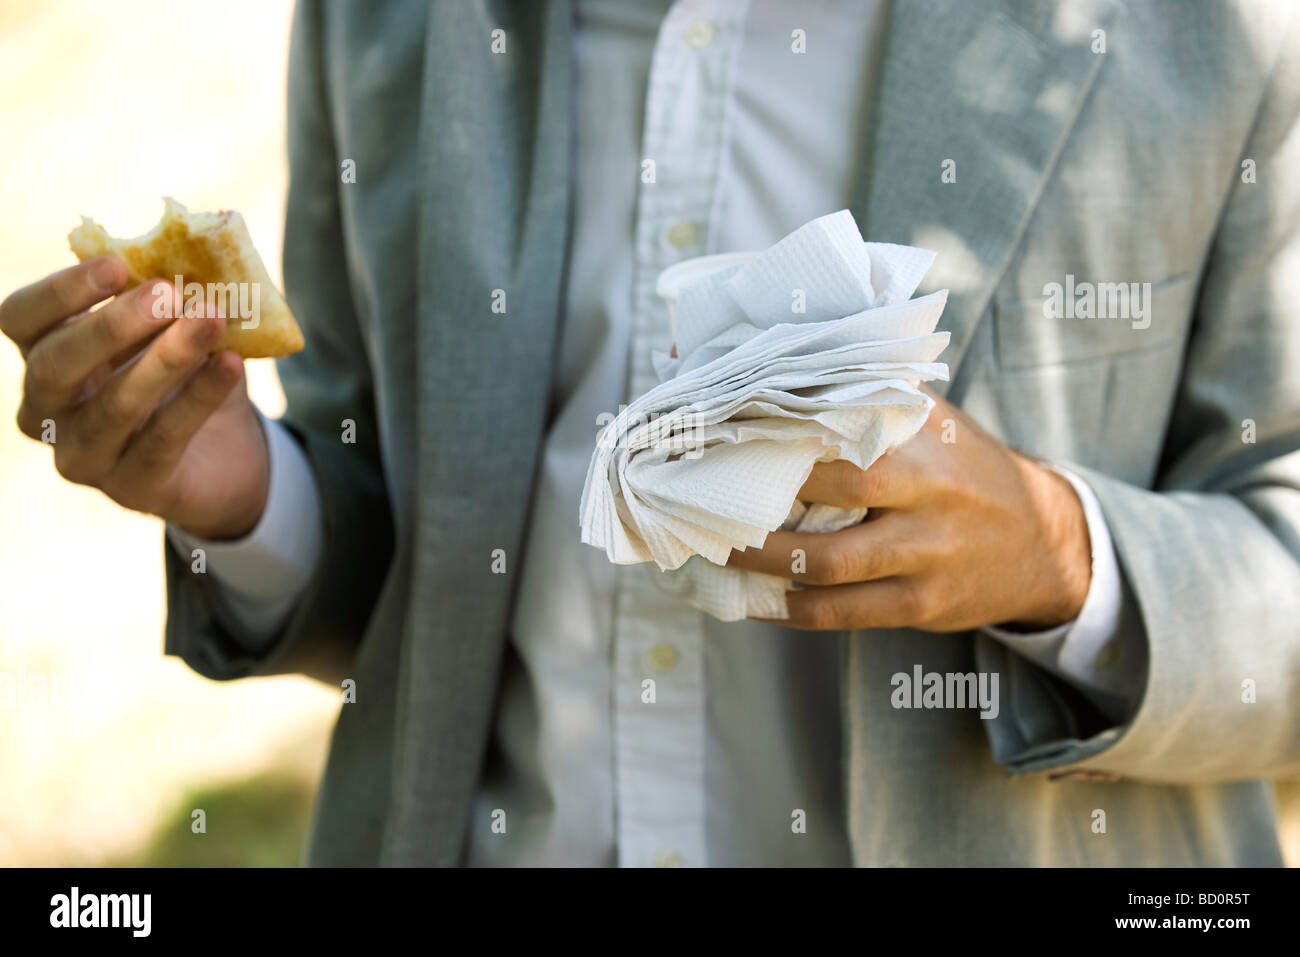 Person holding half eaten pastry in one hand and disposable cup and paper napkins in other hand - Stock Image